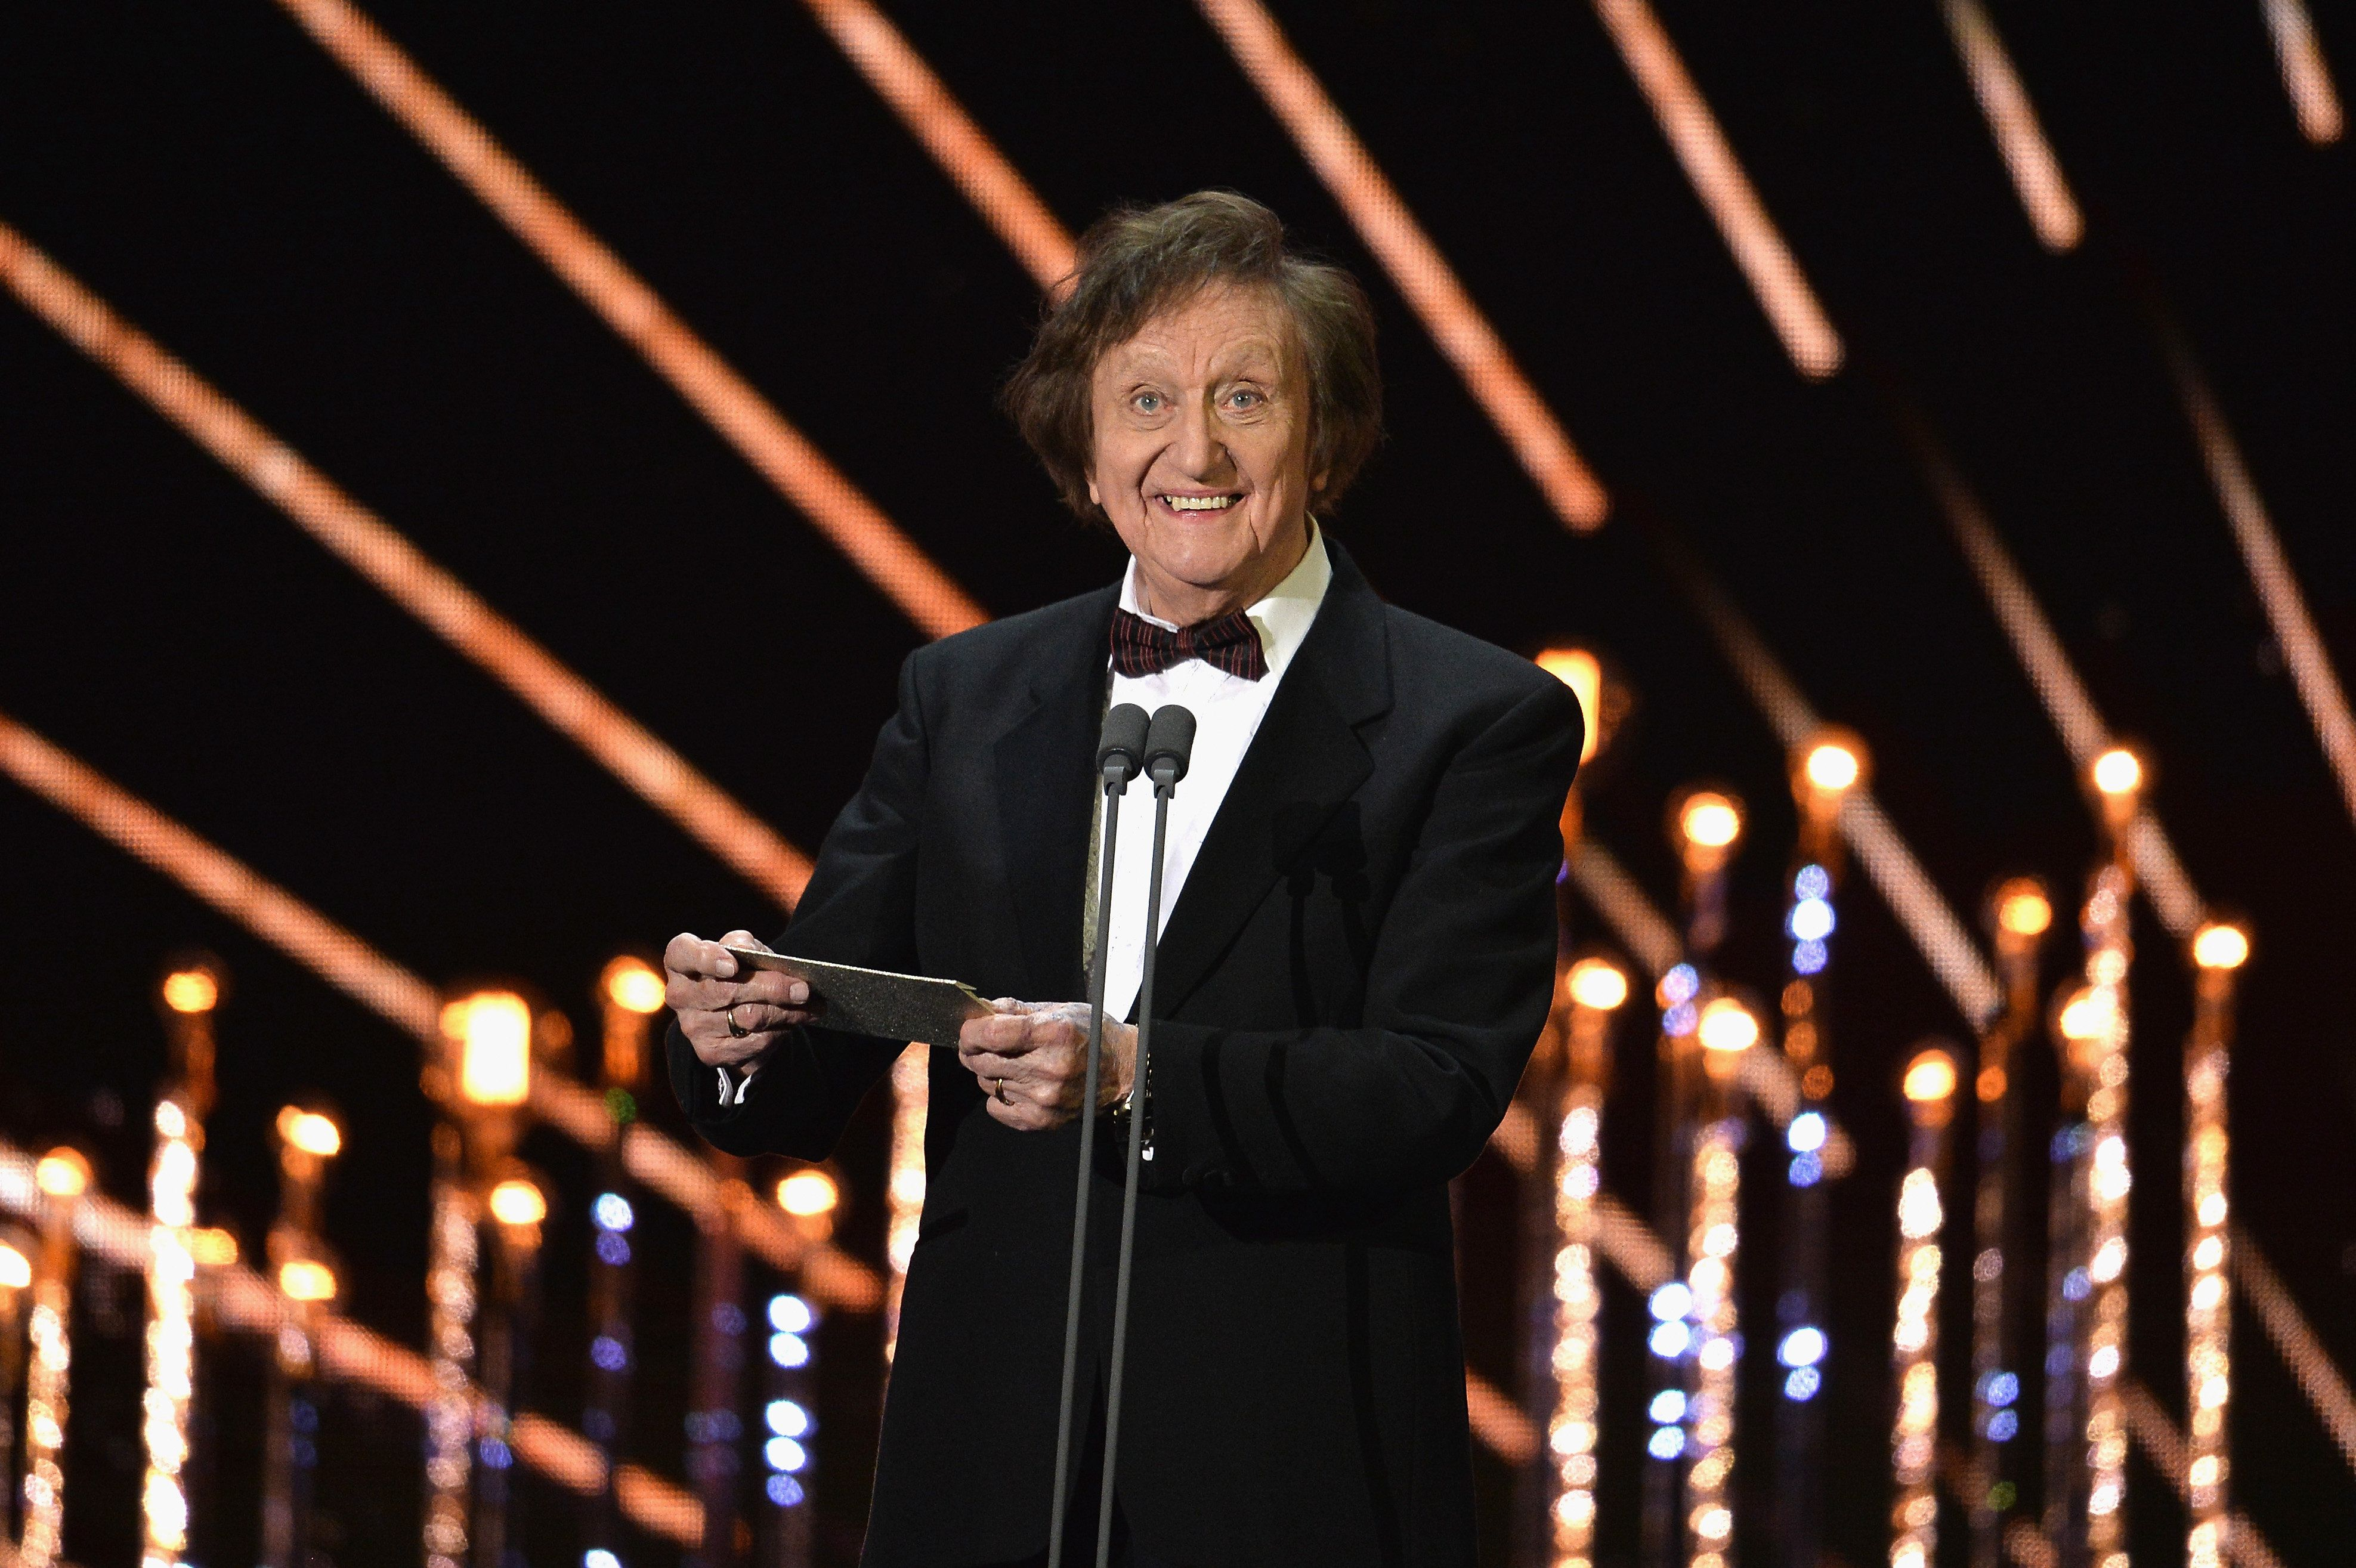 Ken Dodd Makes A Blunder At The NTAs While Reading Out Best Comedy